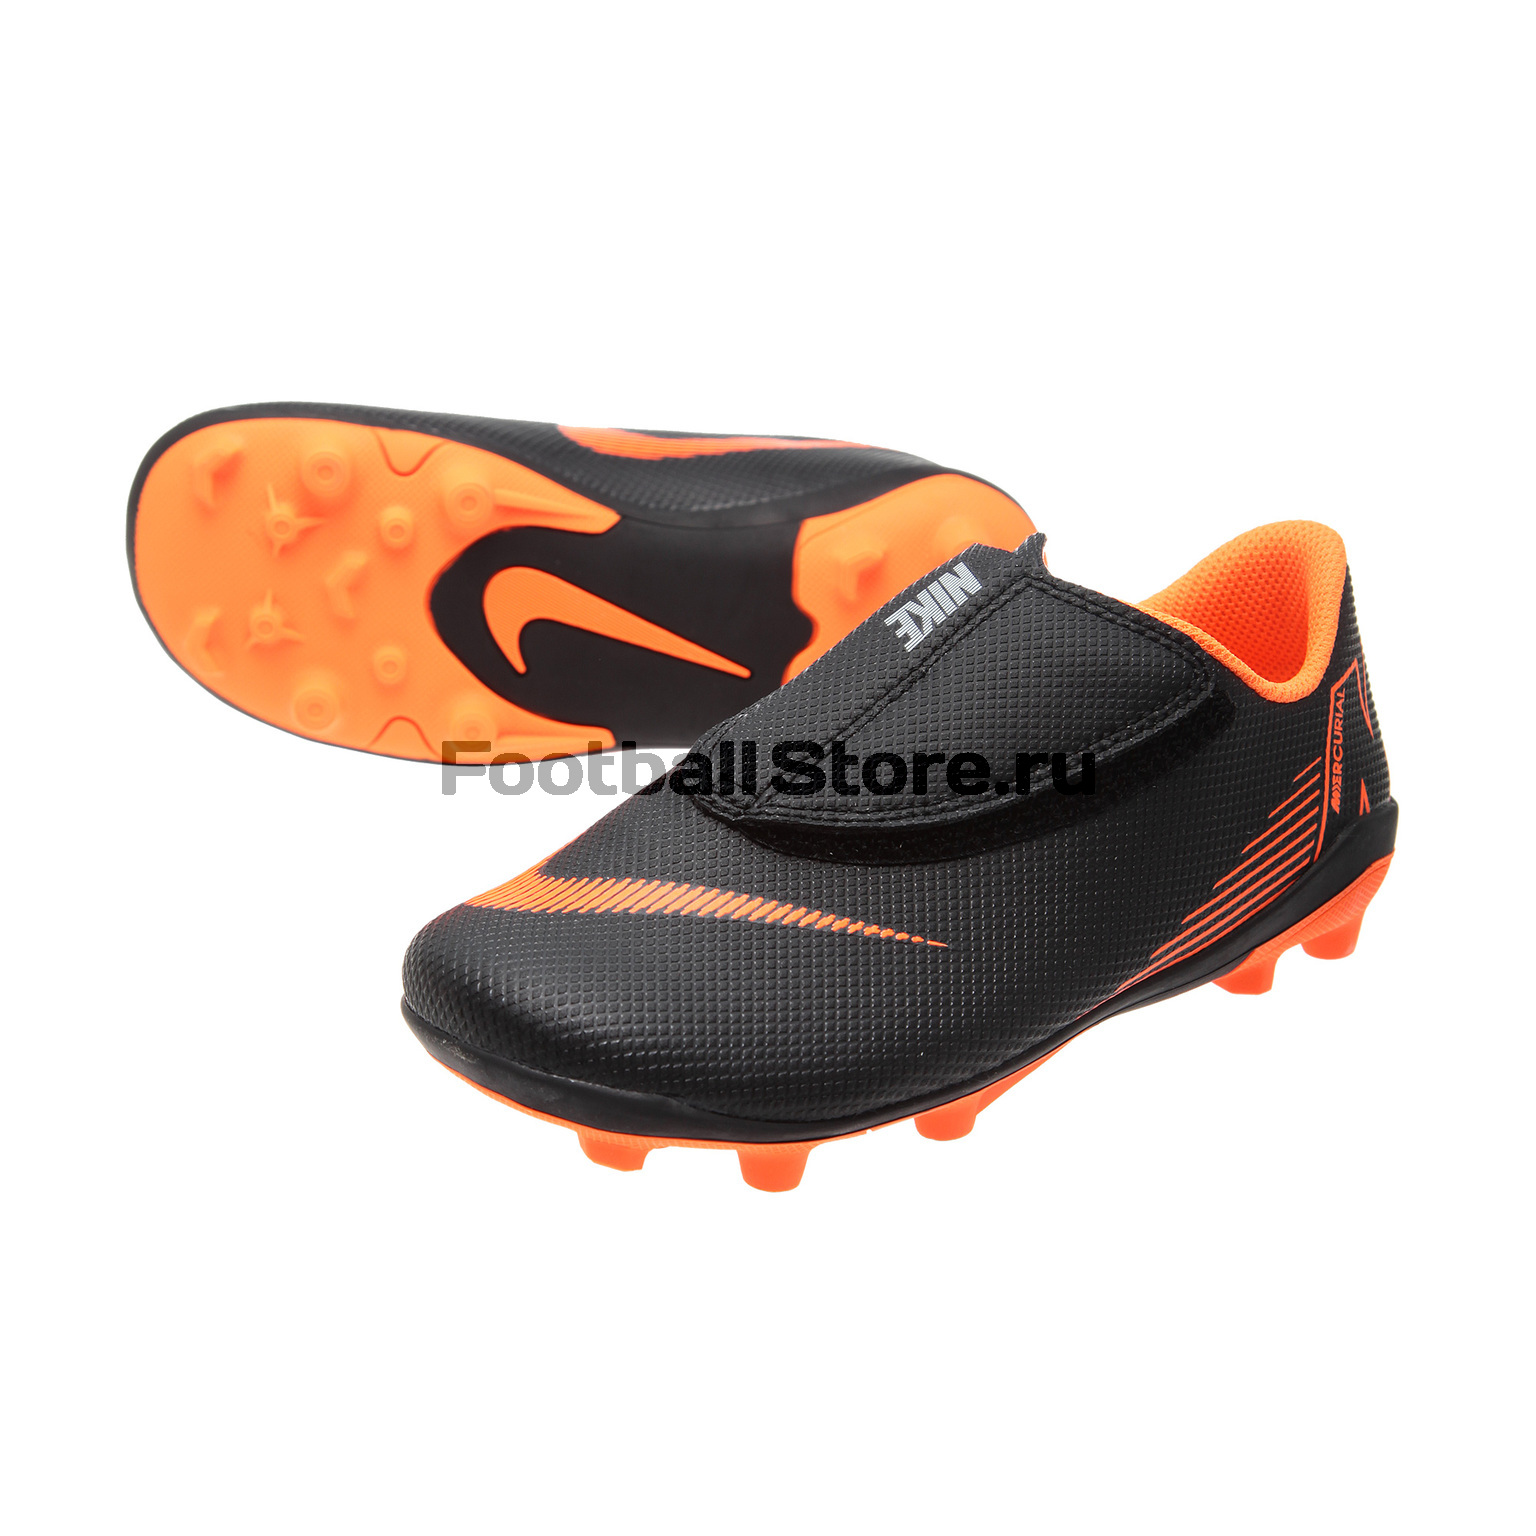 Бутсы Nike JR Vapor 12 Club PS FG/MG AH7351-081 бутсы nike hypervenom phantom iii club fg jrah7290 081